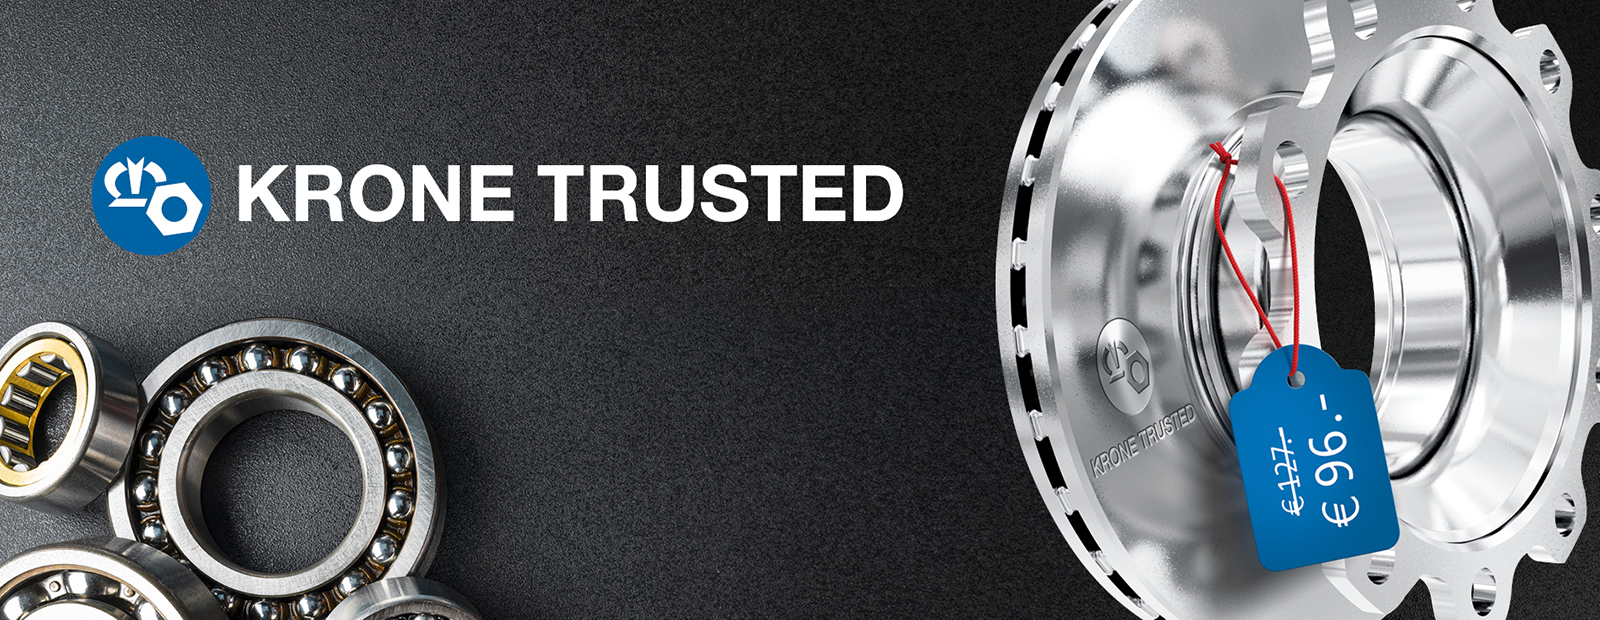 KRONE TRUSTED: The new spare parts brand from the market leader